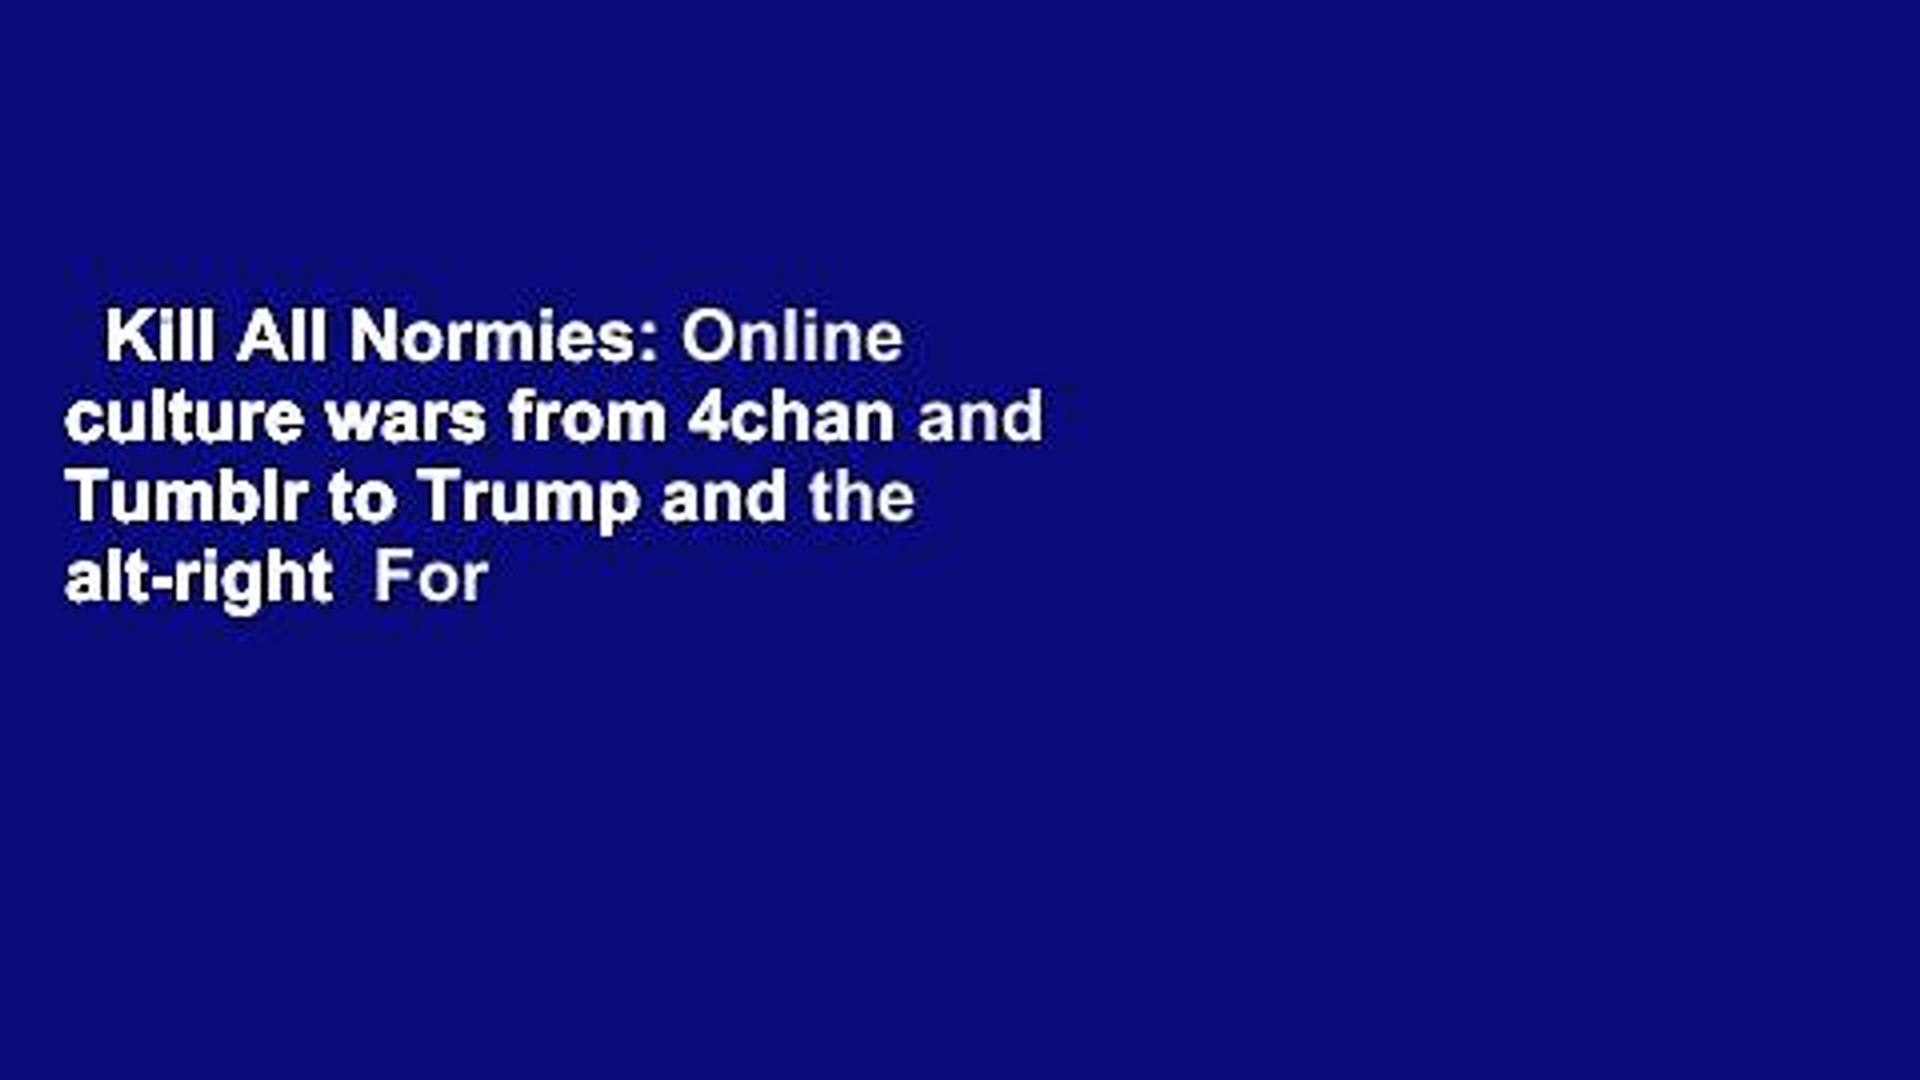 Kill All Normies: Online culture wars from 4chan and Tumblr to Trump and the alt-right  For